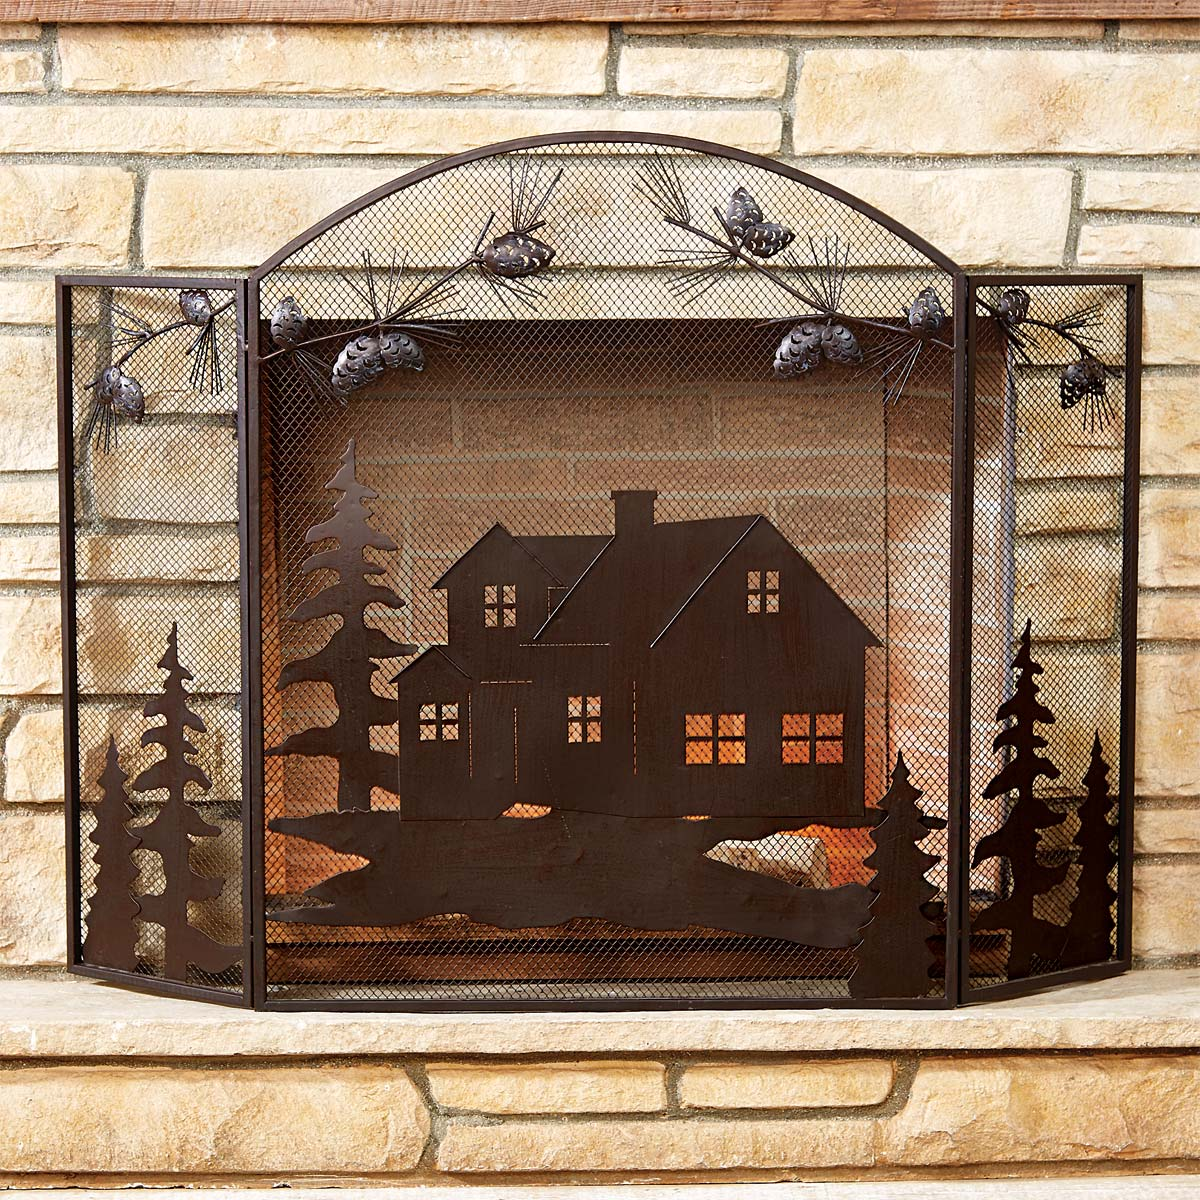 Black Forest Decor Cabin scene fireplace screen